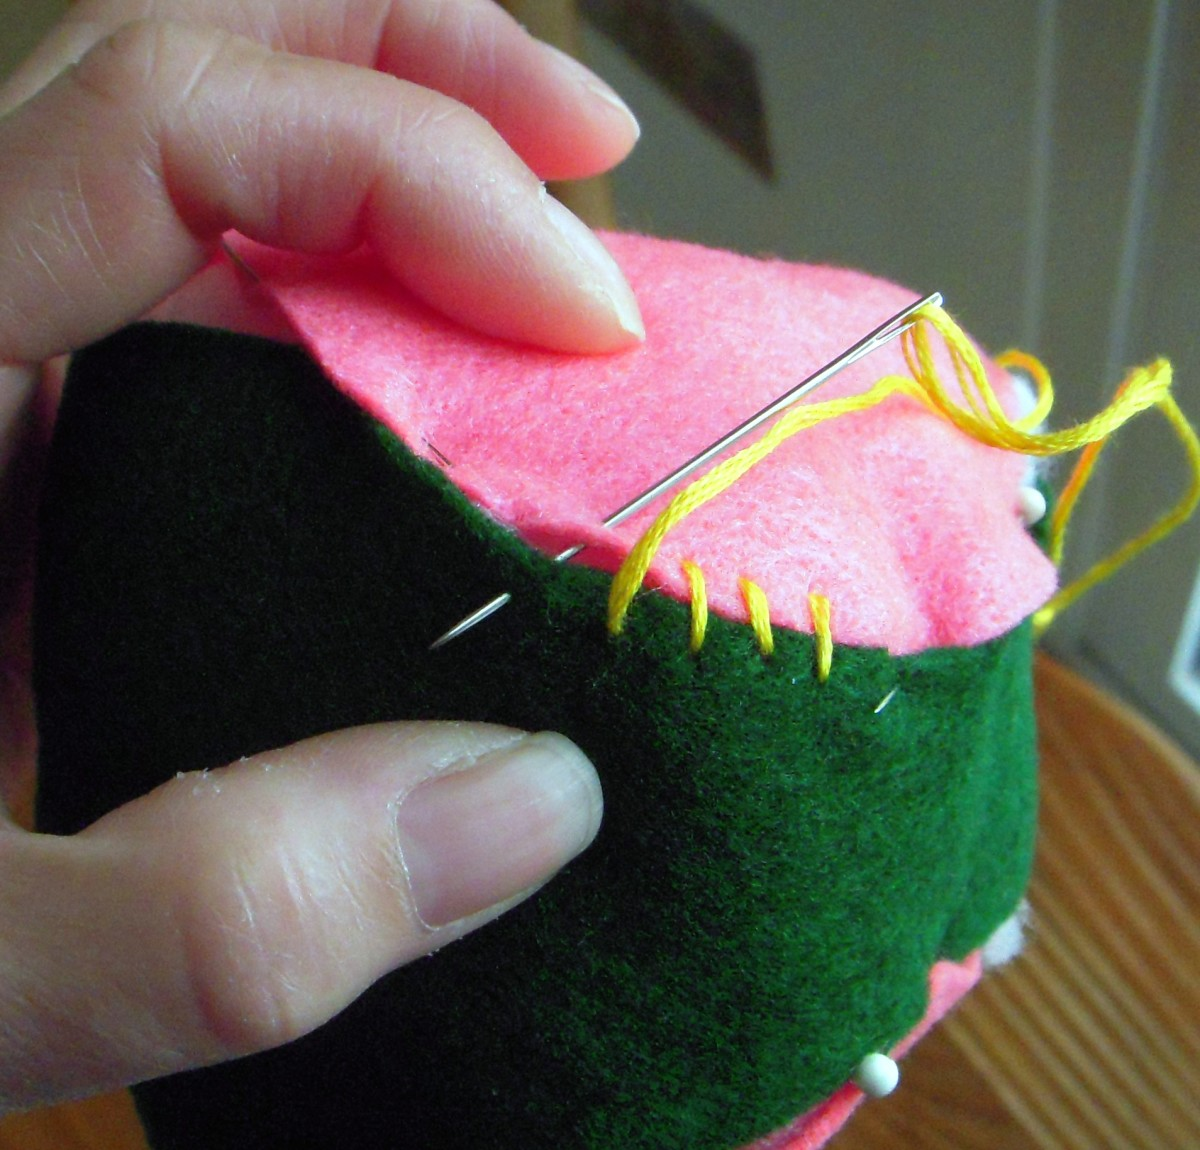 Butt together edges and sew with overhand stitch all the way around. Remove pins as you stitch.